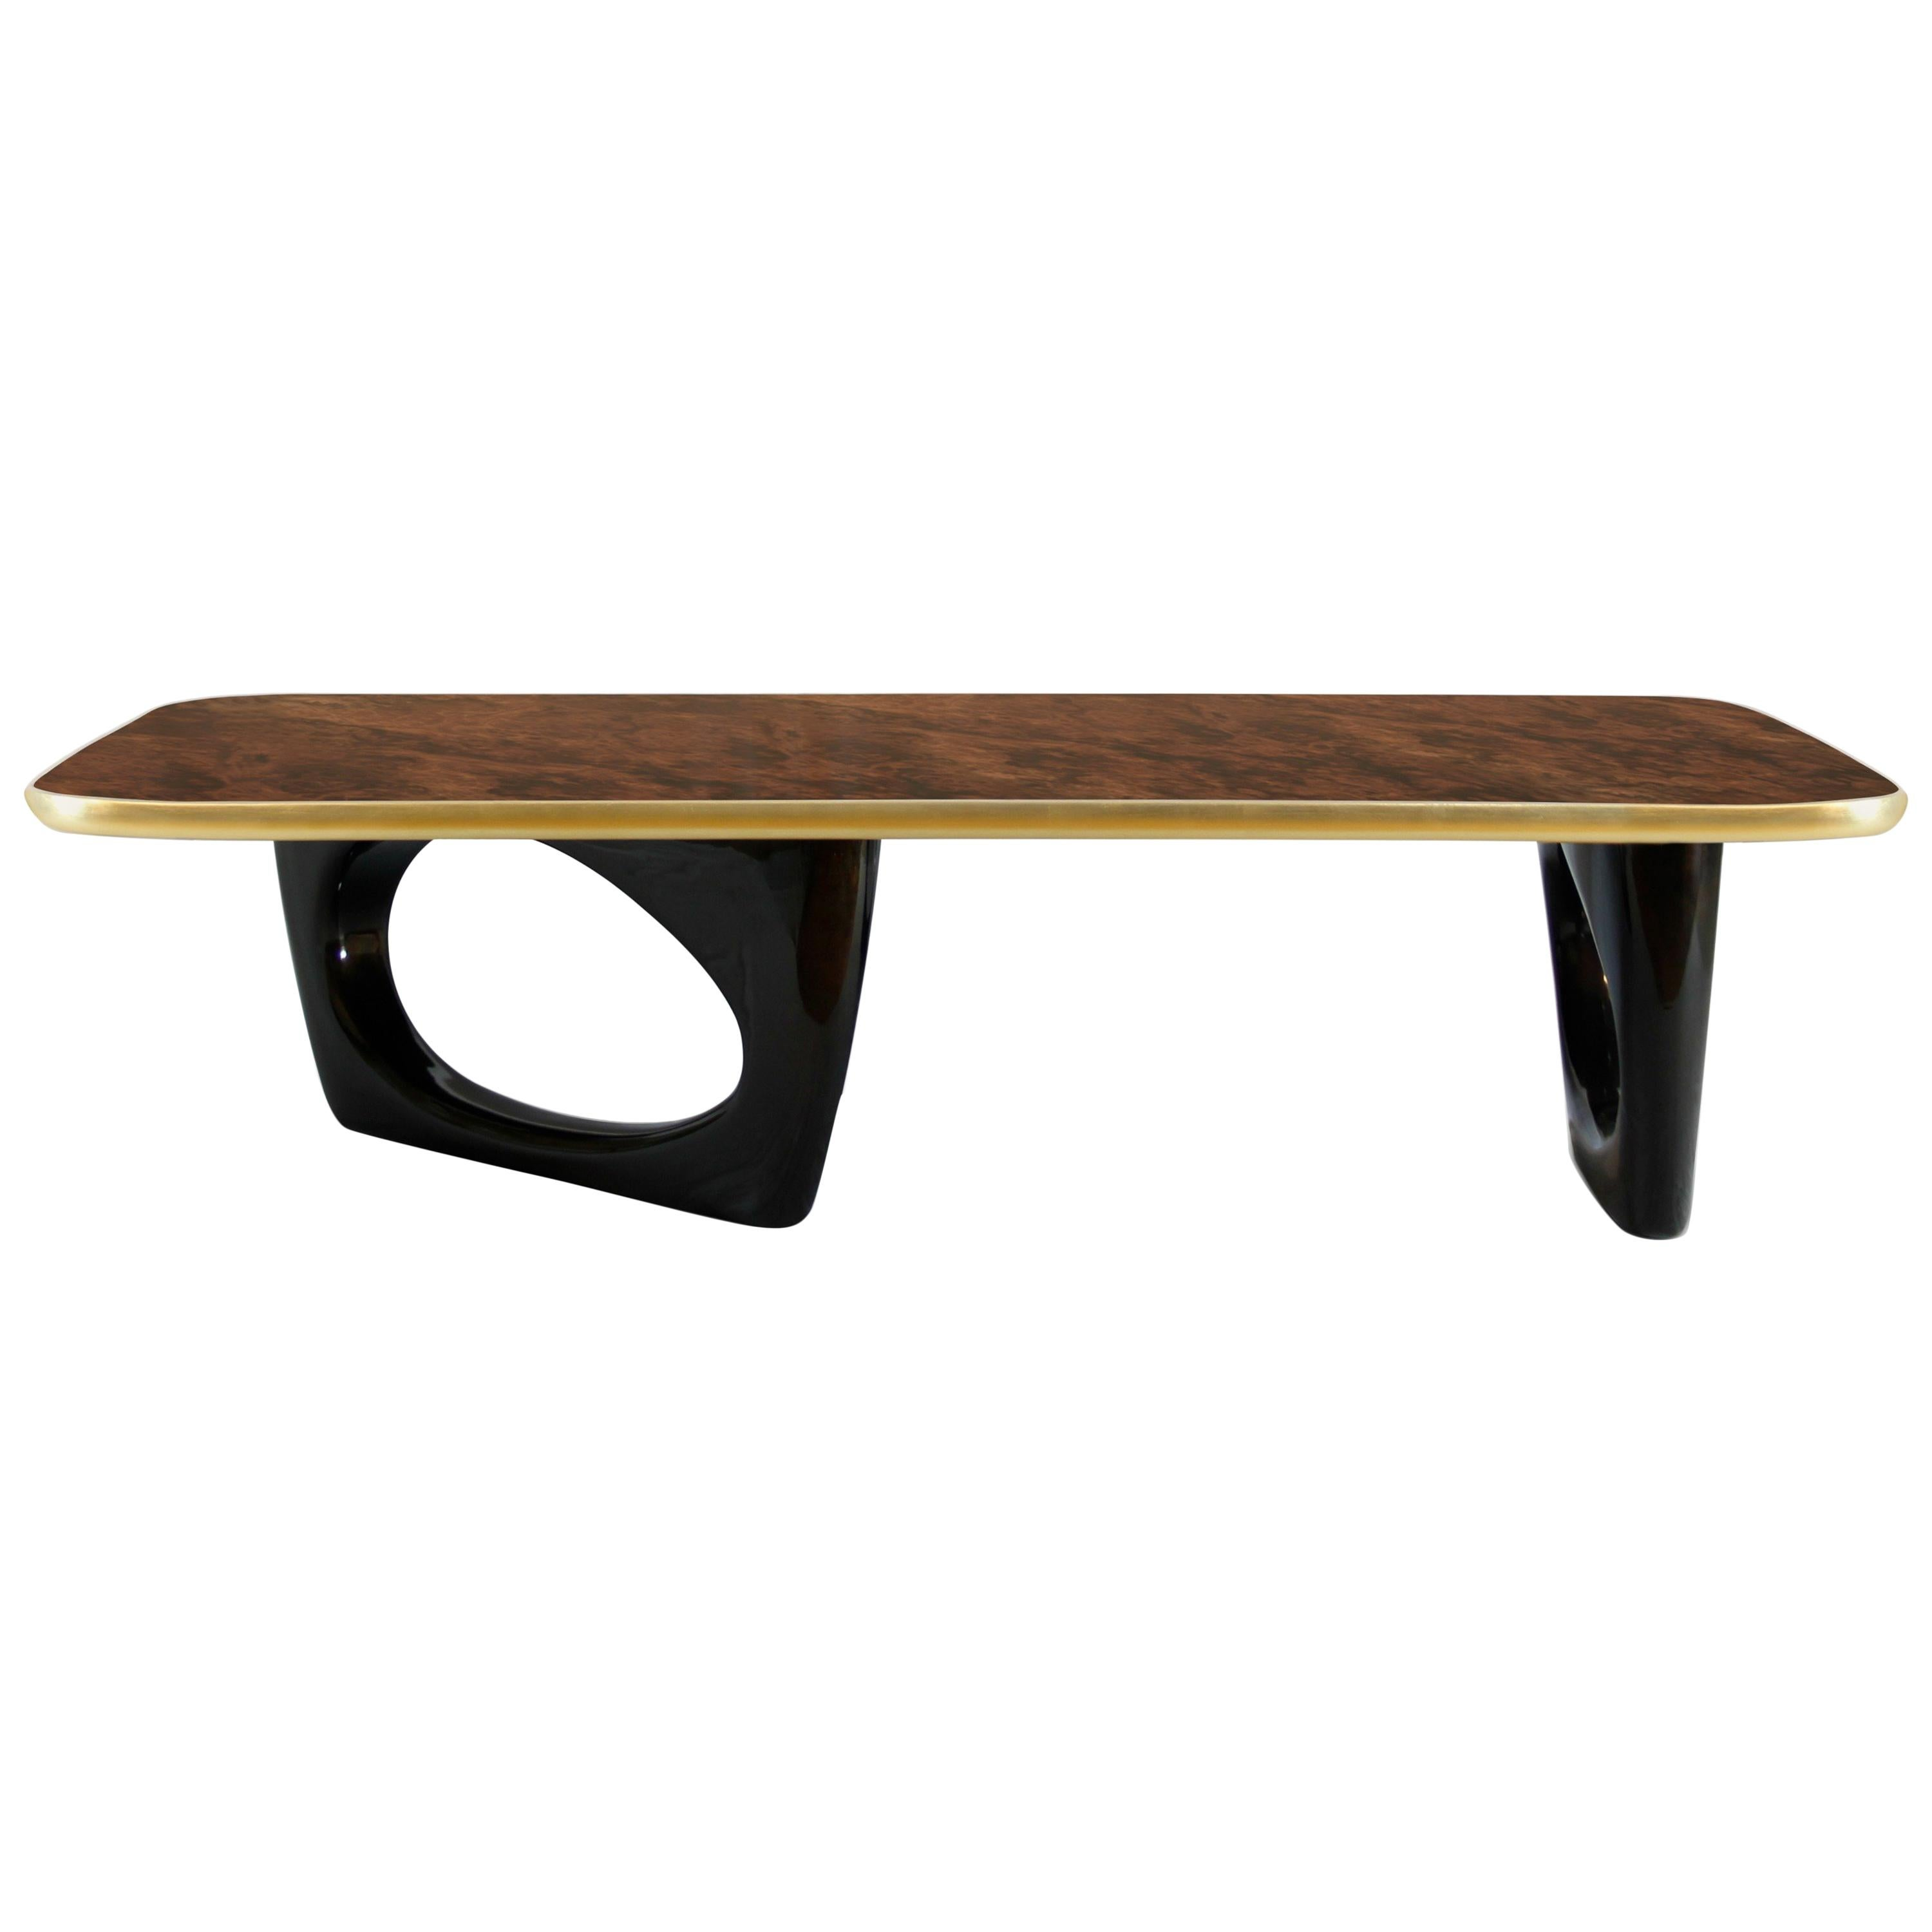 Sherwood Center Table in Wood with Lacquer and Gold Details